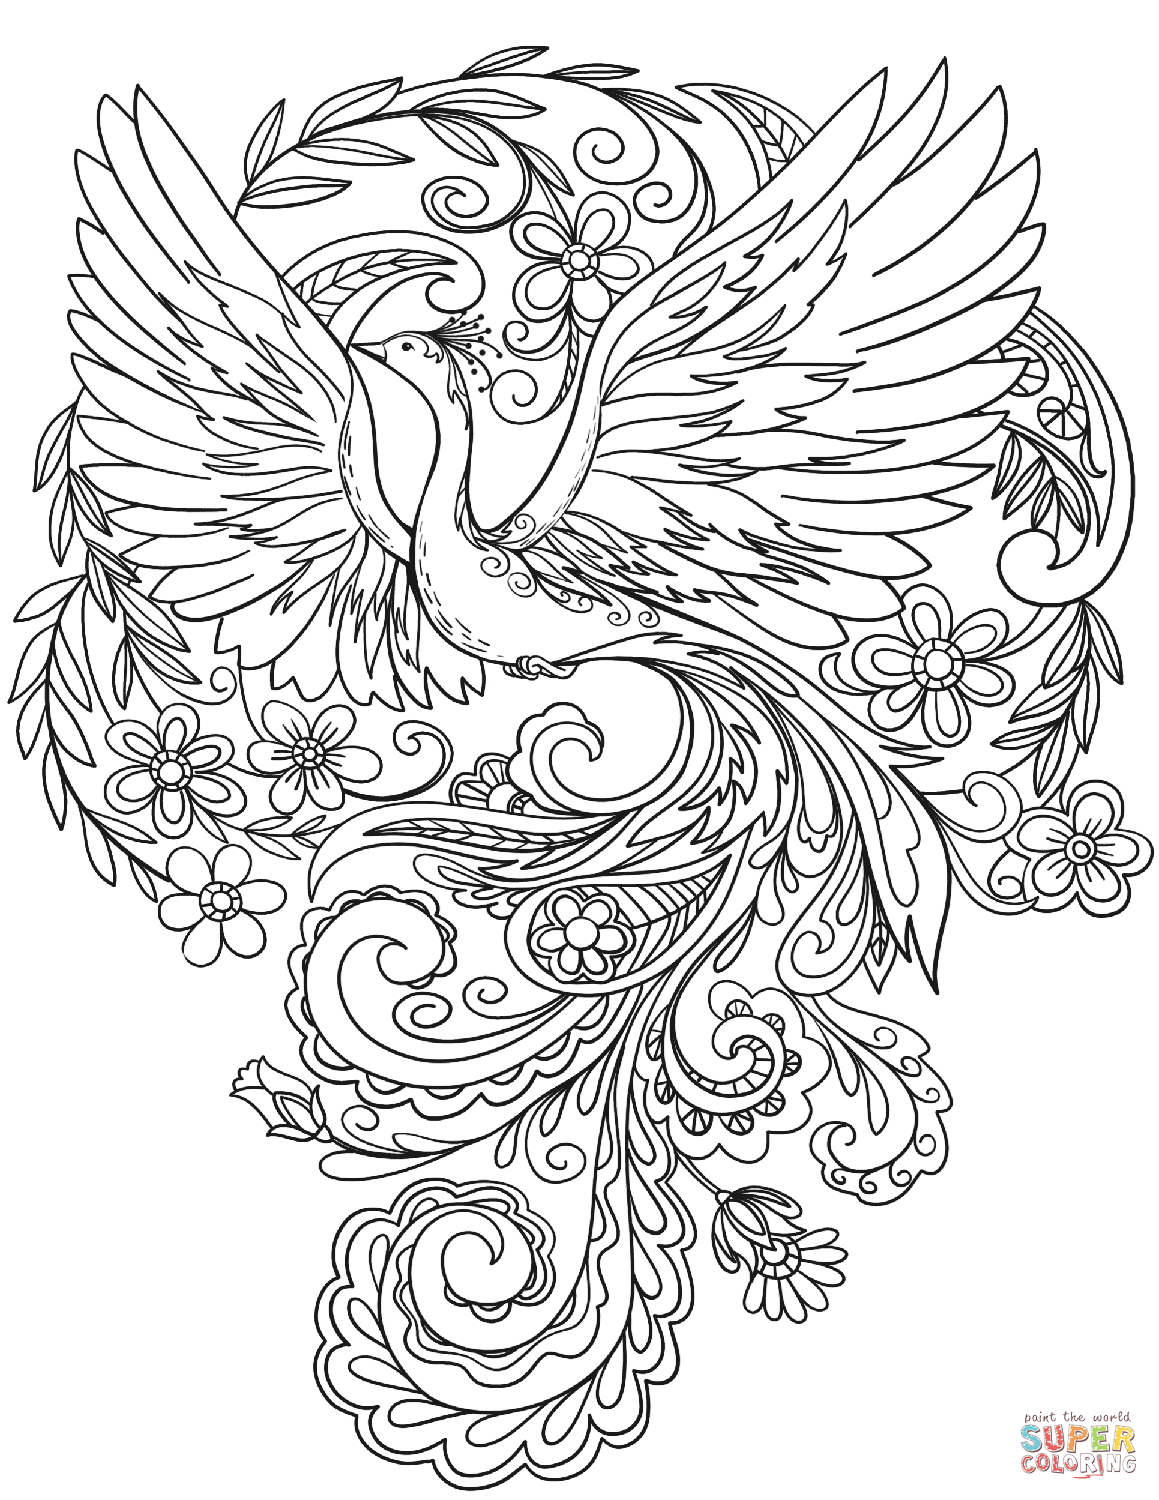 Peacock In Flowers Super Coloring Bujo Coloring Pages Peacock